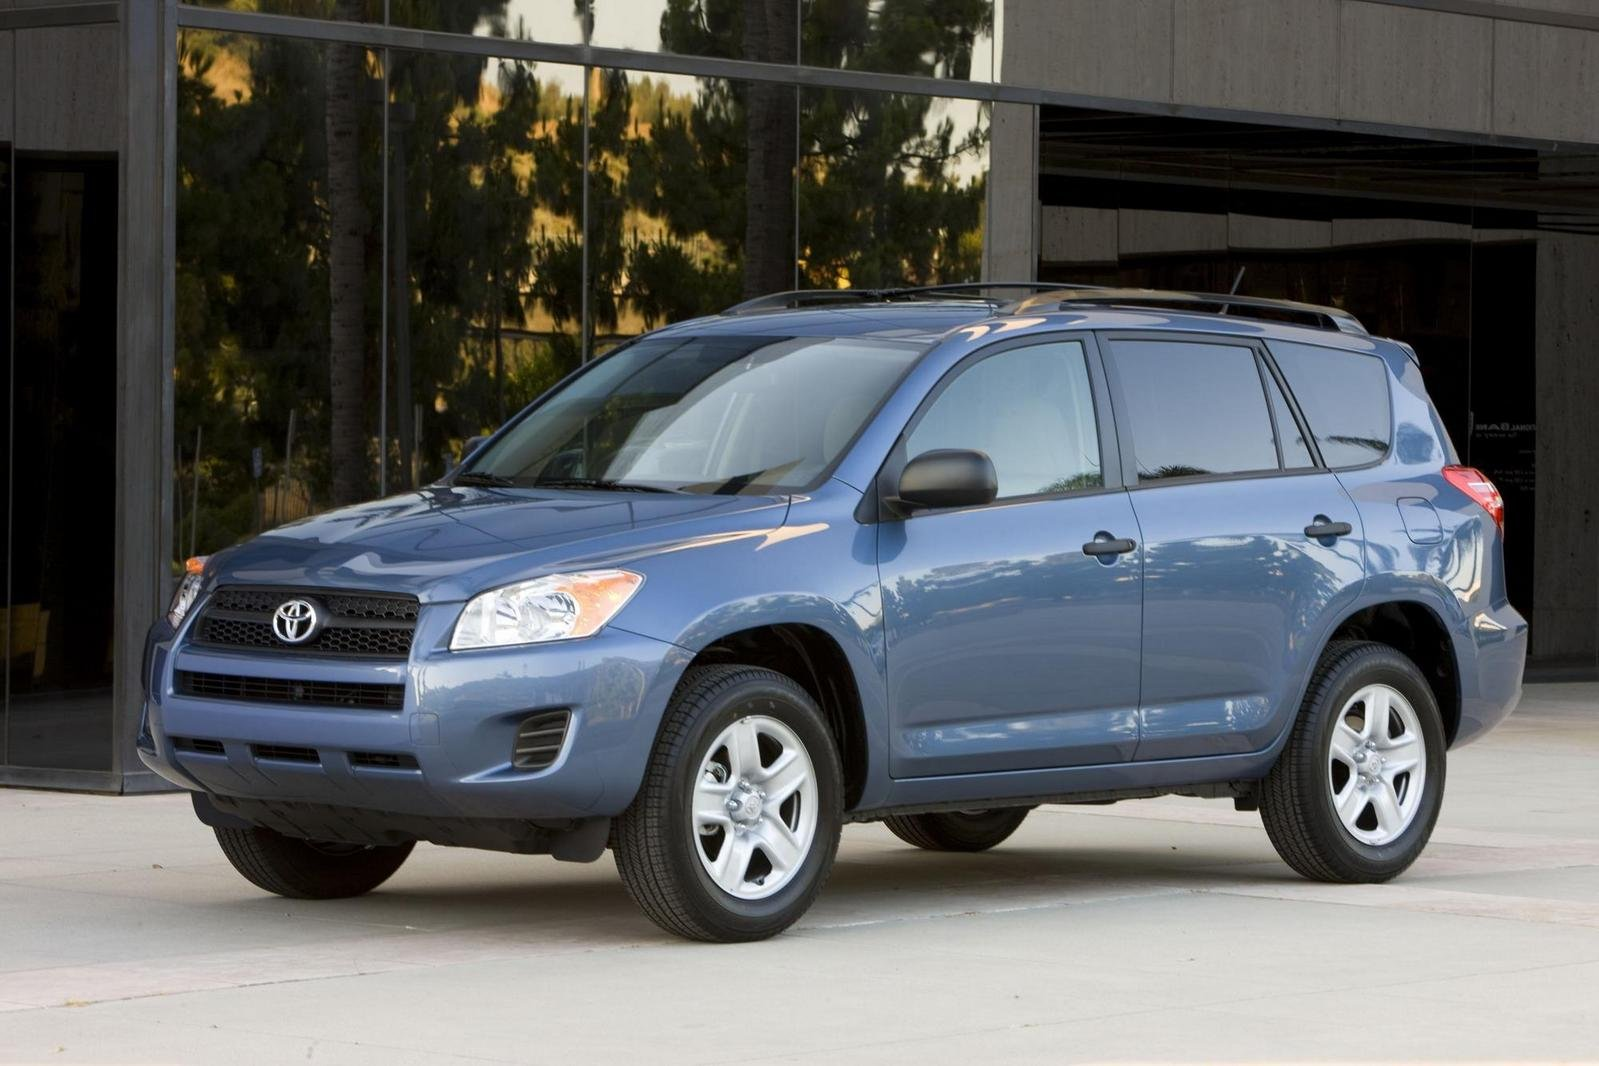 2010 Toyota Rav4 Picture 323746 Car Review Top Speed